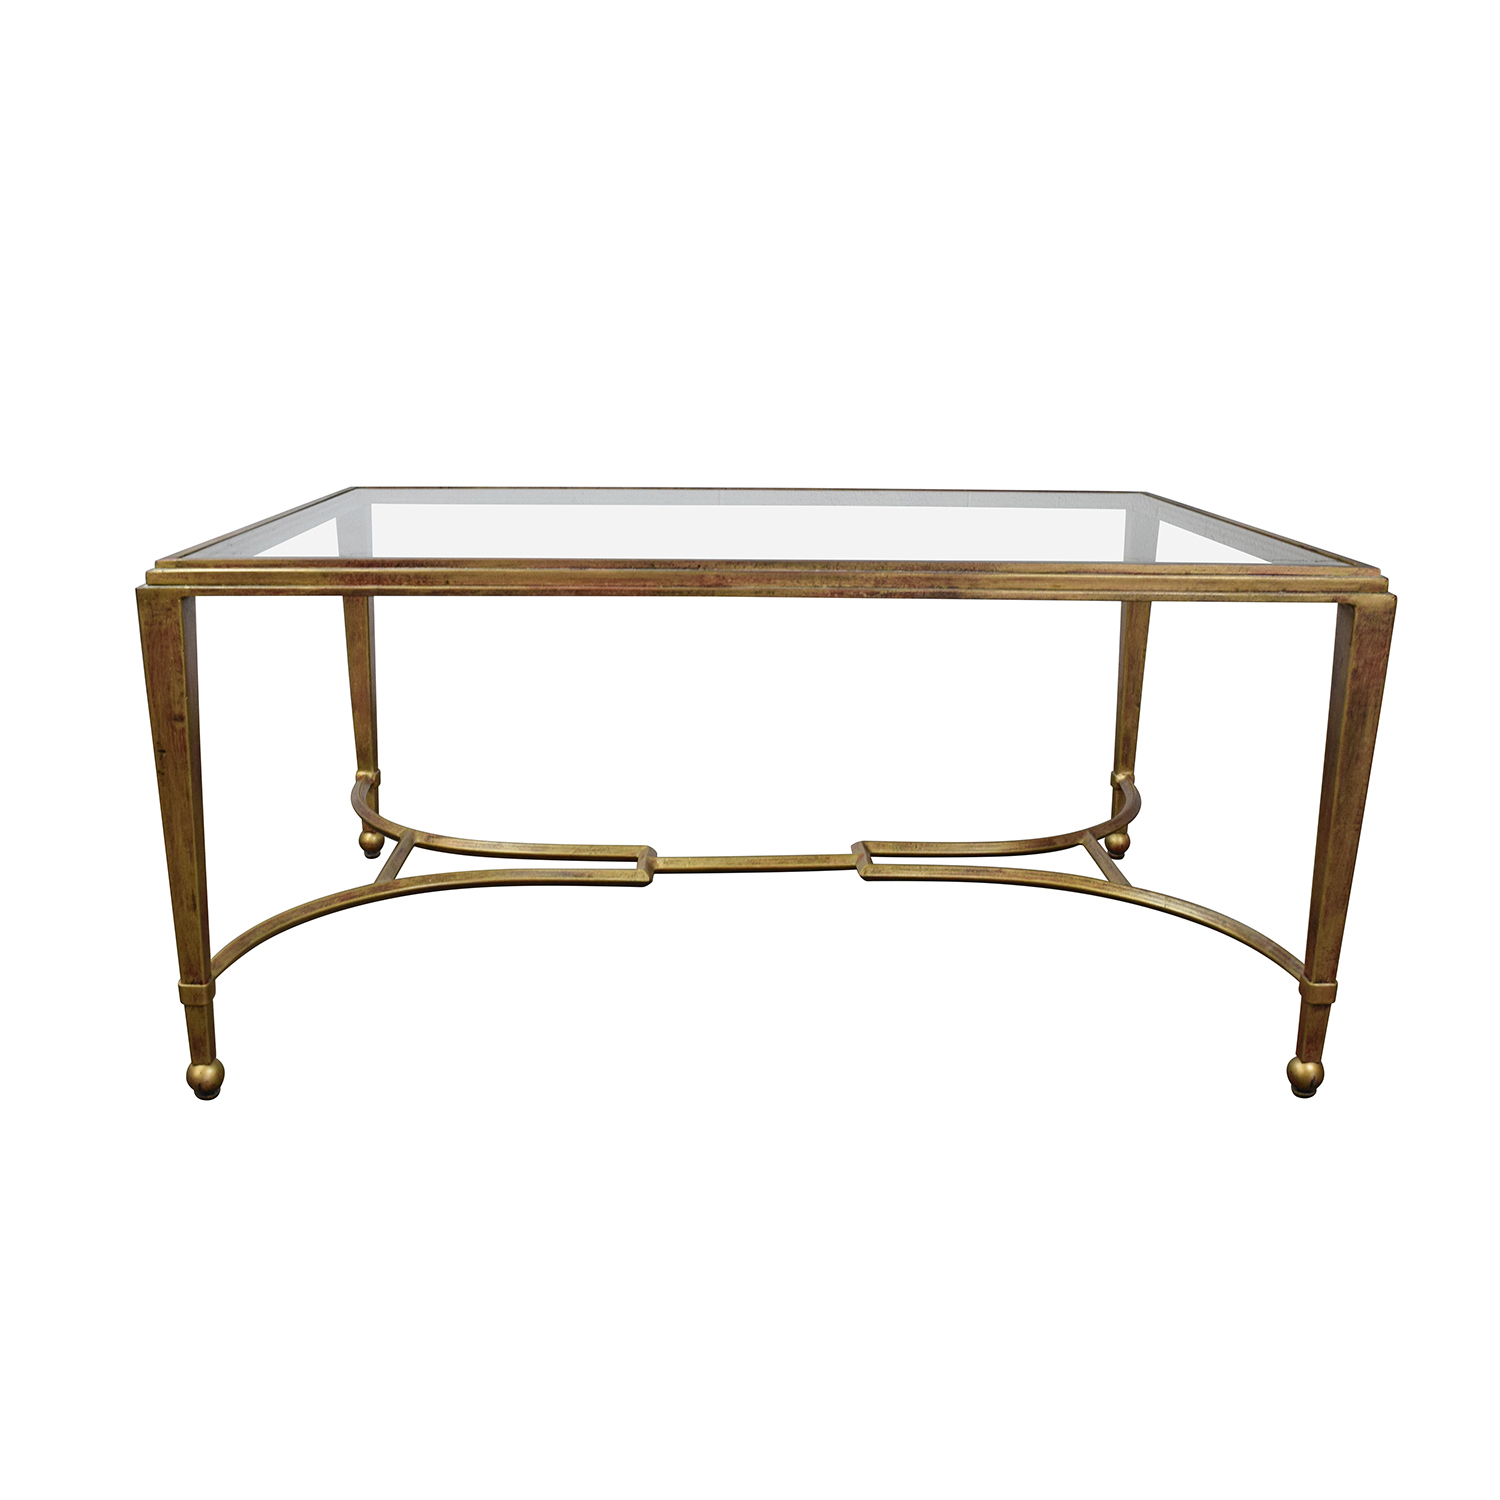 Safavieh Couture Safavieh Couture Abelard Coffee Table on sale